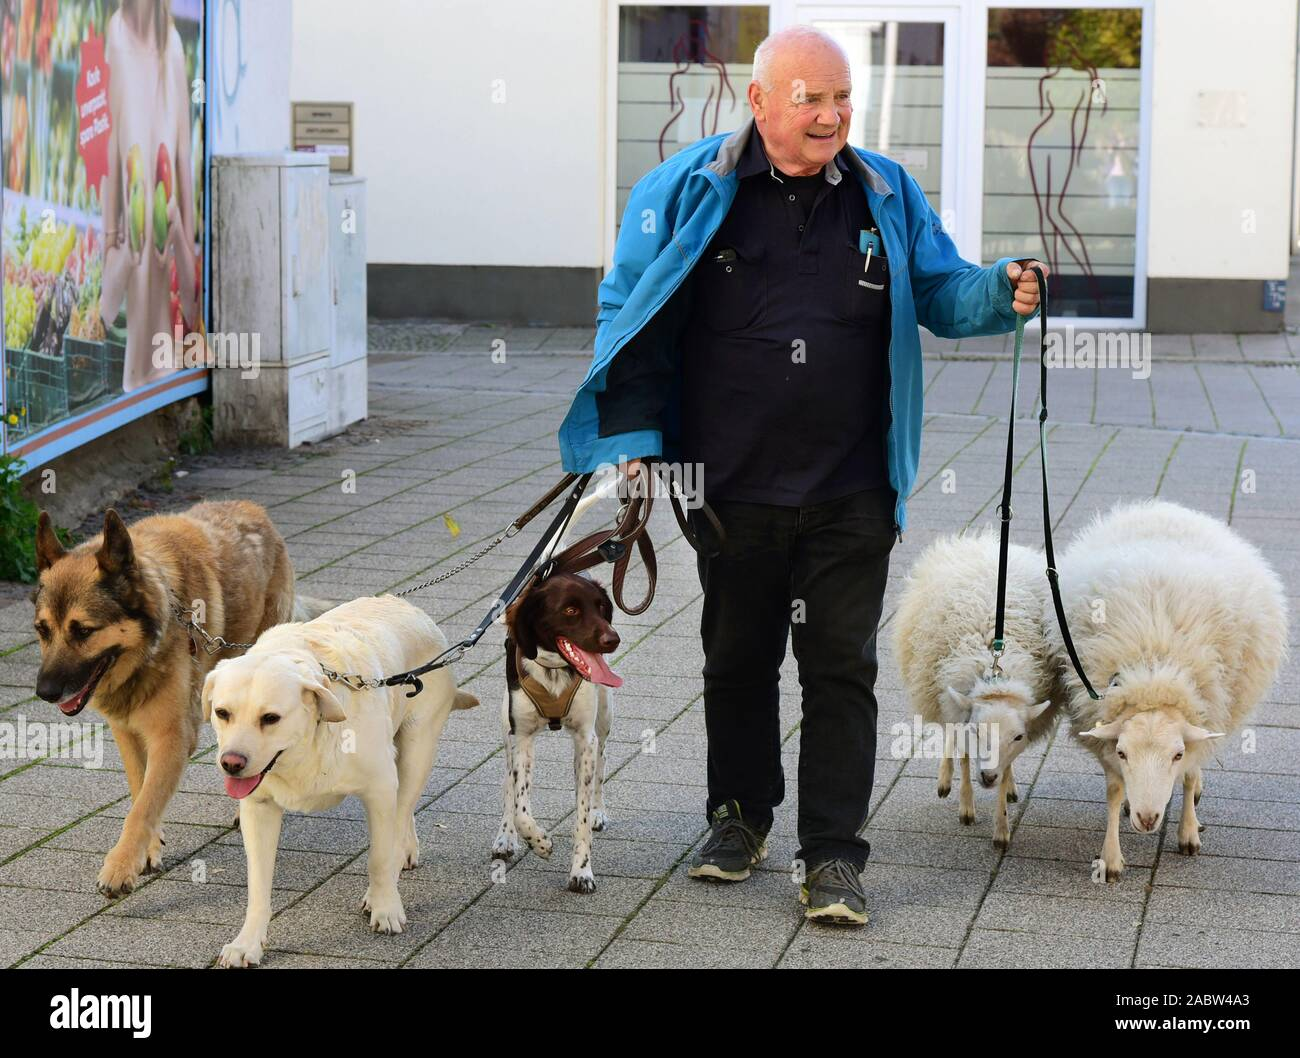 Schkeuditz, Germany. 21st Oct, 2019. Werner Dreßler walking with his animals, three dogs and two sheep in the city centre. The 79-year-old master toolmaker takes the animals for a walk in the city every day and is an eye-catcher for locals and visitors alike. Credit: Waltraud Grubitzsch/dpa-Zentralbild/ZB/dpa/Alamy Live News Stock Photo